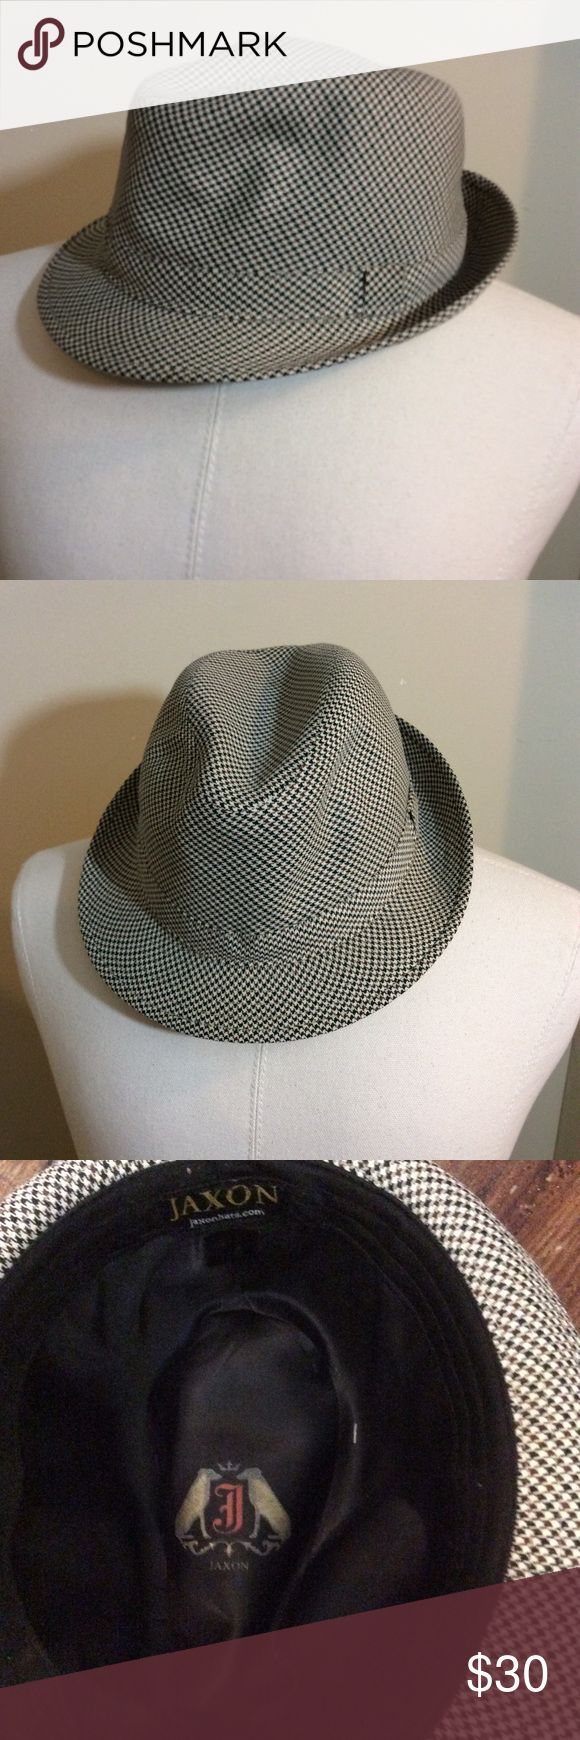 NWOT MEN'S JAXON HATS HOUNDSTOOTH FEDORA Make this yours! JAXON HATS HOUNDSTOOTH FEDORA!  Shipping Policy:  Sent to you via USPS First Class, 1 Day after payment is received. jaxon Accessories Hats